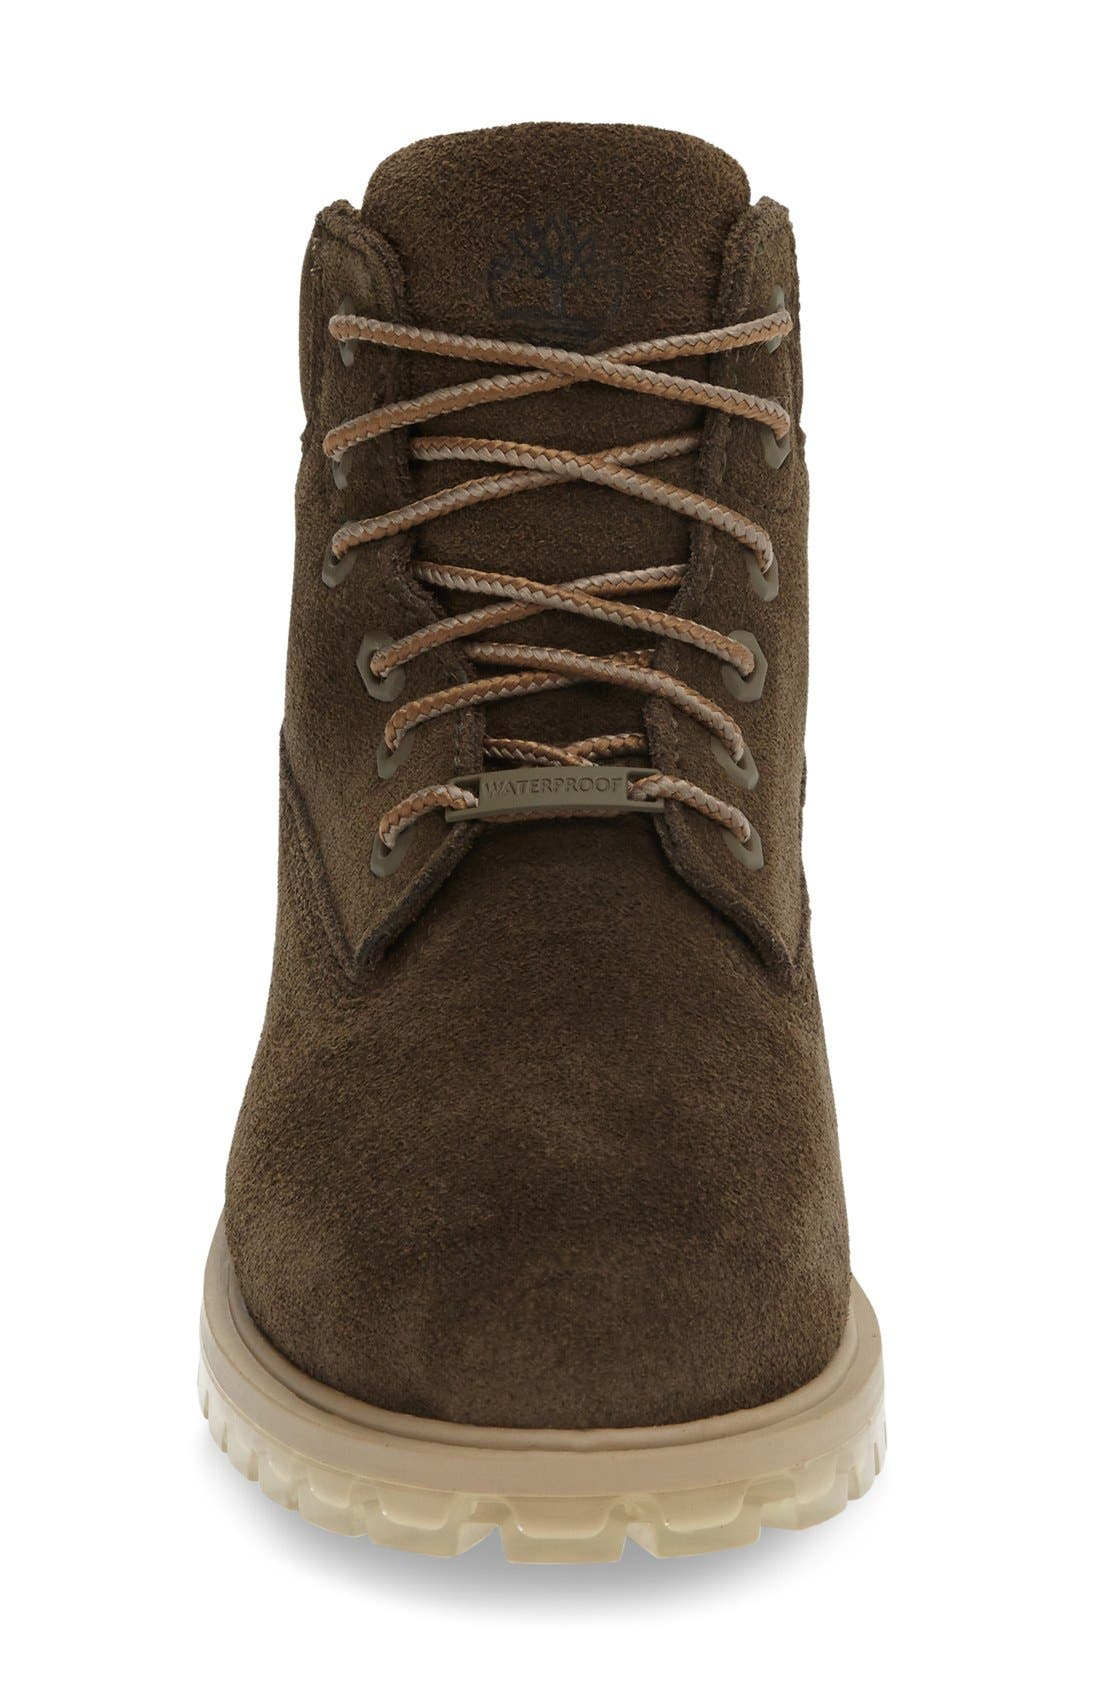 Alternate Image 3  - Timberland '6 Inch' Waterproof PrimaLoft® ECO Insulated Winter Boot (Baby, Walker, Toddler, Little Kid & Big Kid) (Limited Edition)